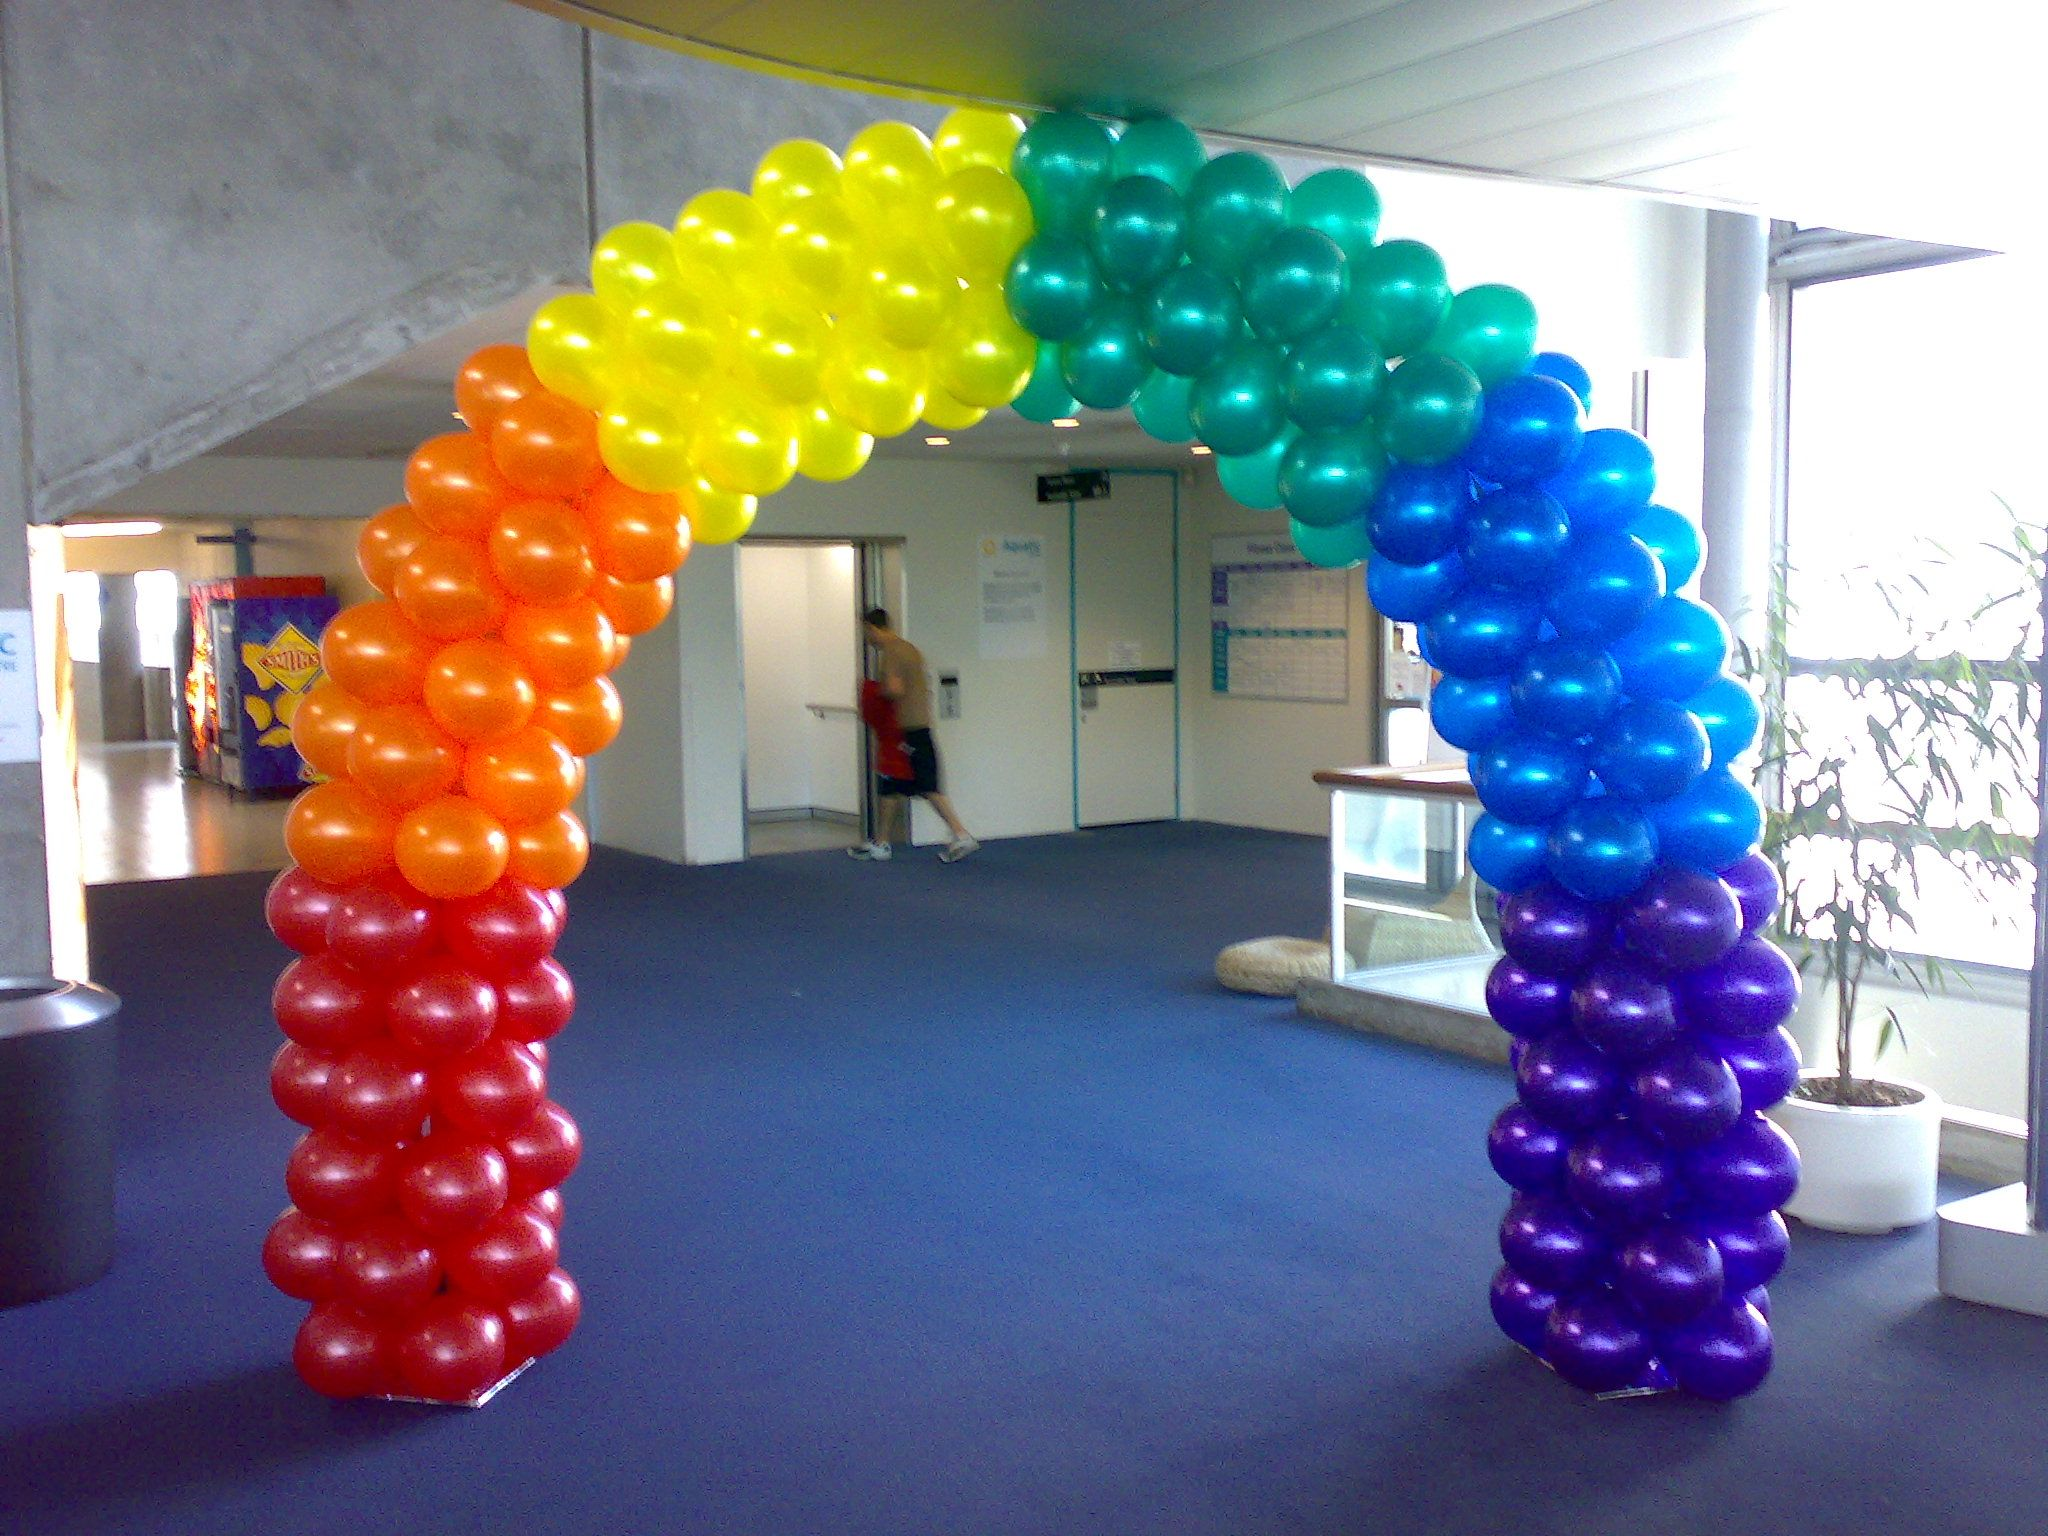 Share for How to make a rainbow arch